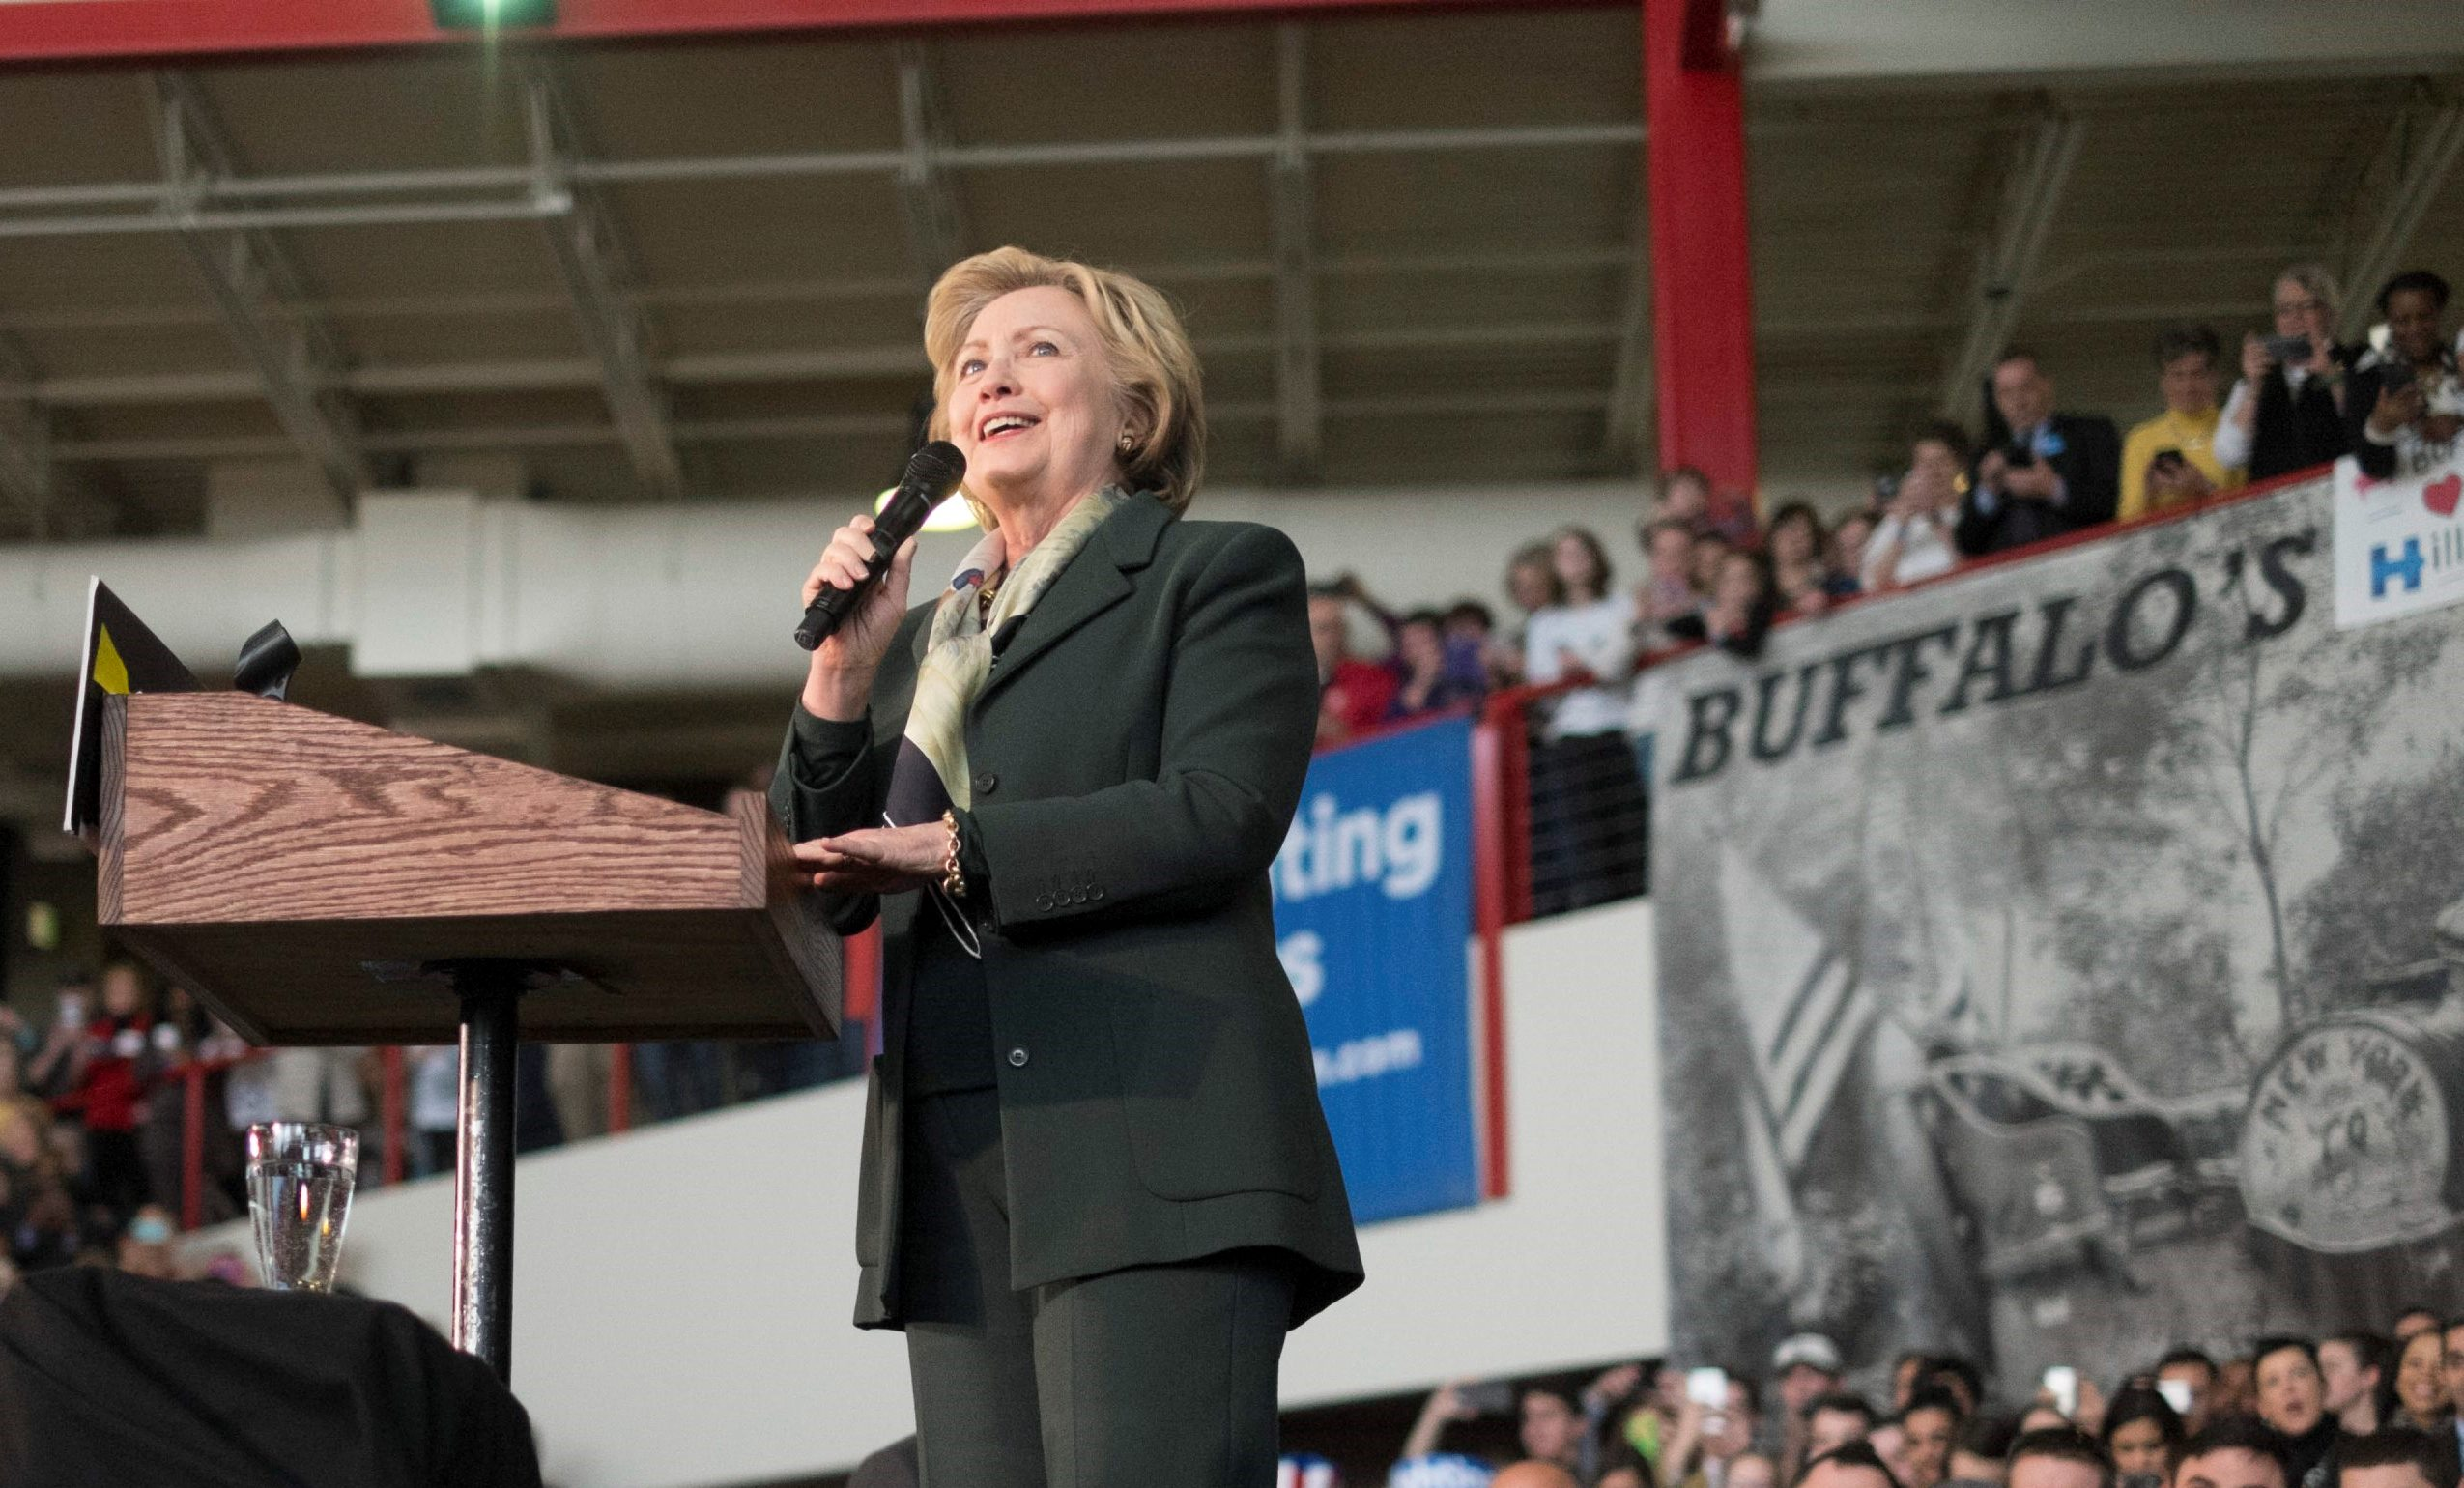 Democratic presidential nominee Hillary Clinton speaks at a campaign event at the Pierce Arrow Museum in Buffalo. (News file photo)